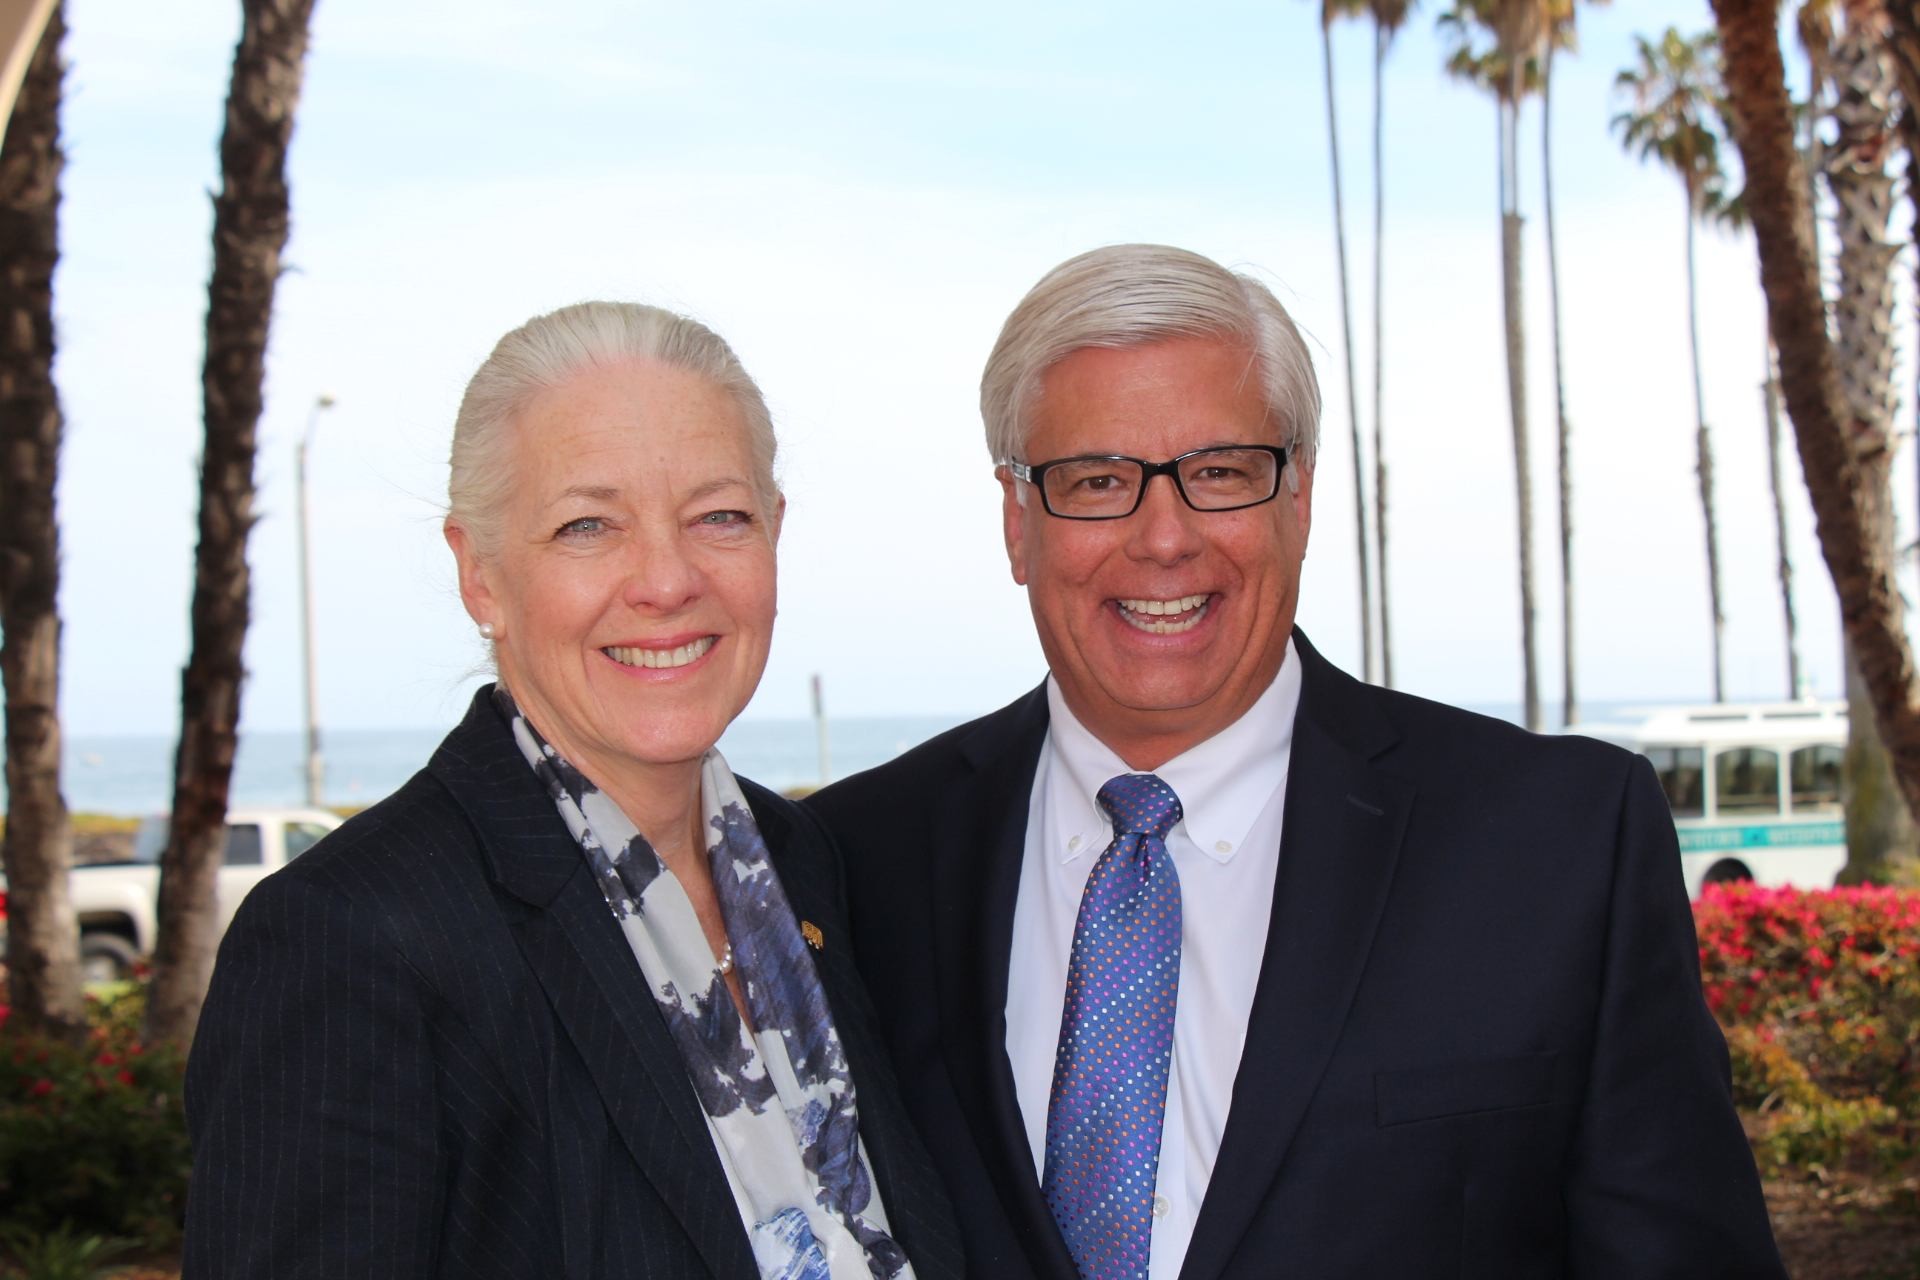 Director Level sponsor Montecito Bank and Trust's Janet Garufis, president and CEO, with Founding sponsor Union Bank's George Leis, executive vice president, regional president private bank division.